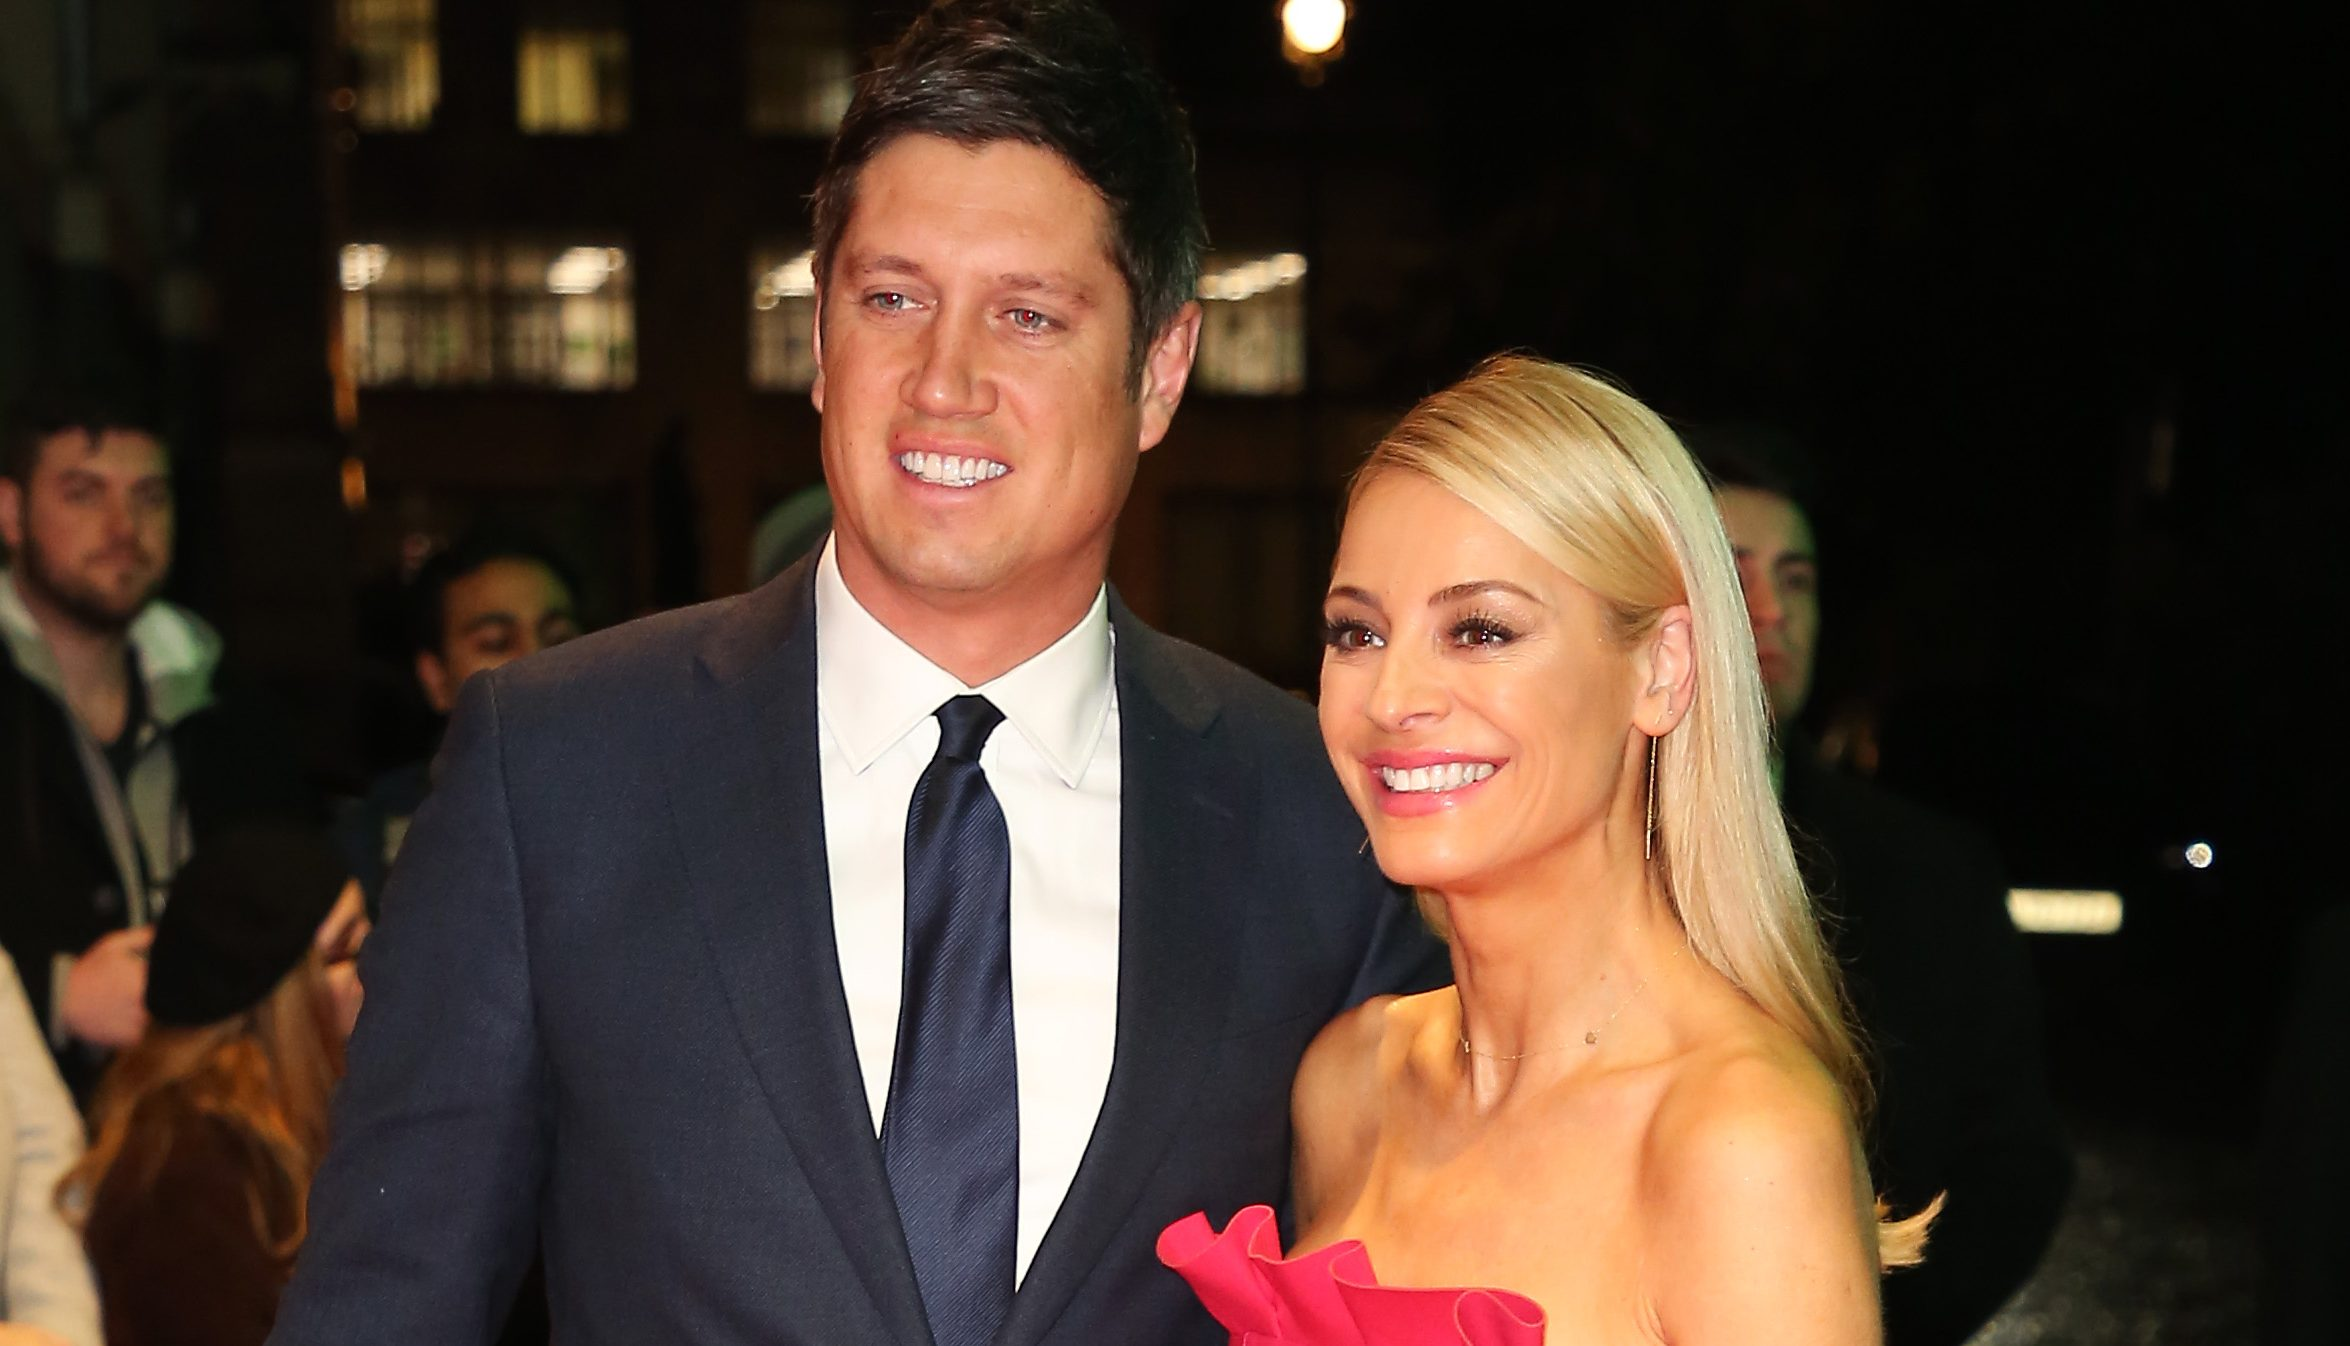 Vernon Kay is provoked by fan who asks if he and Strictly host Tess Daly are 'living separate lives'